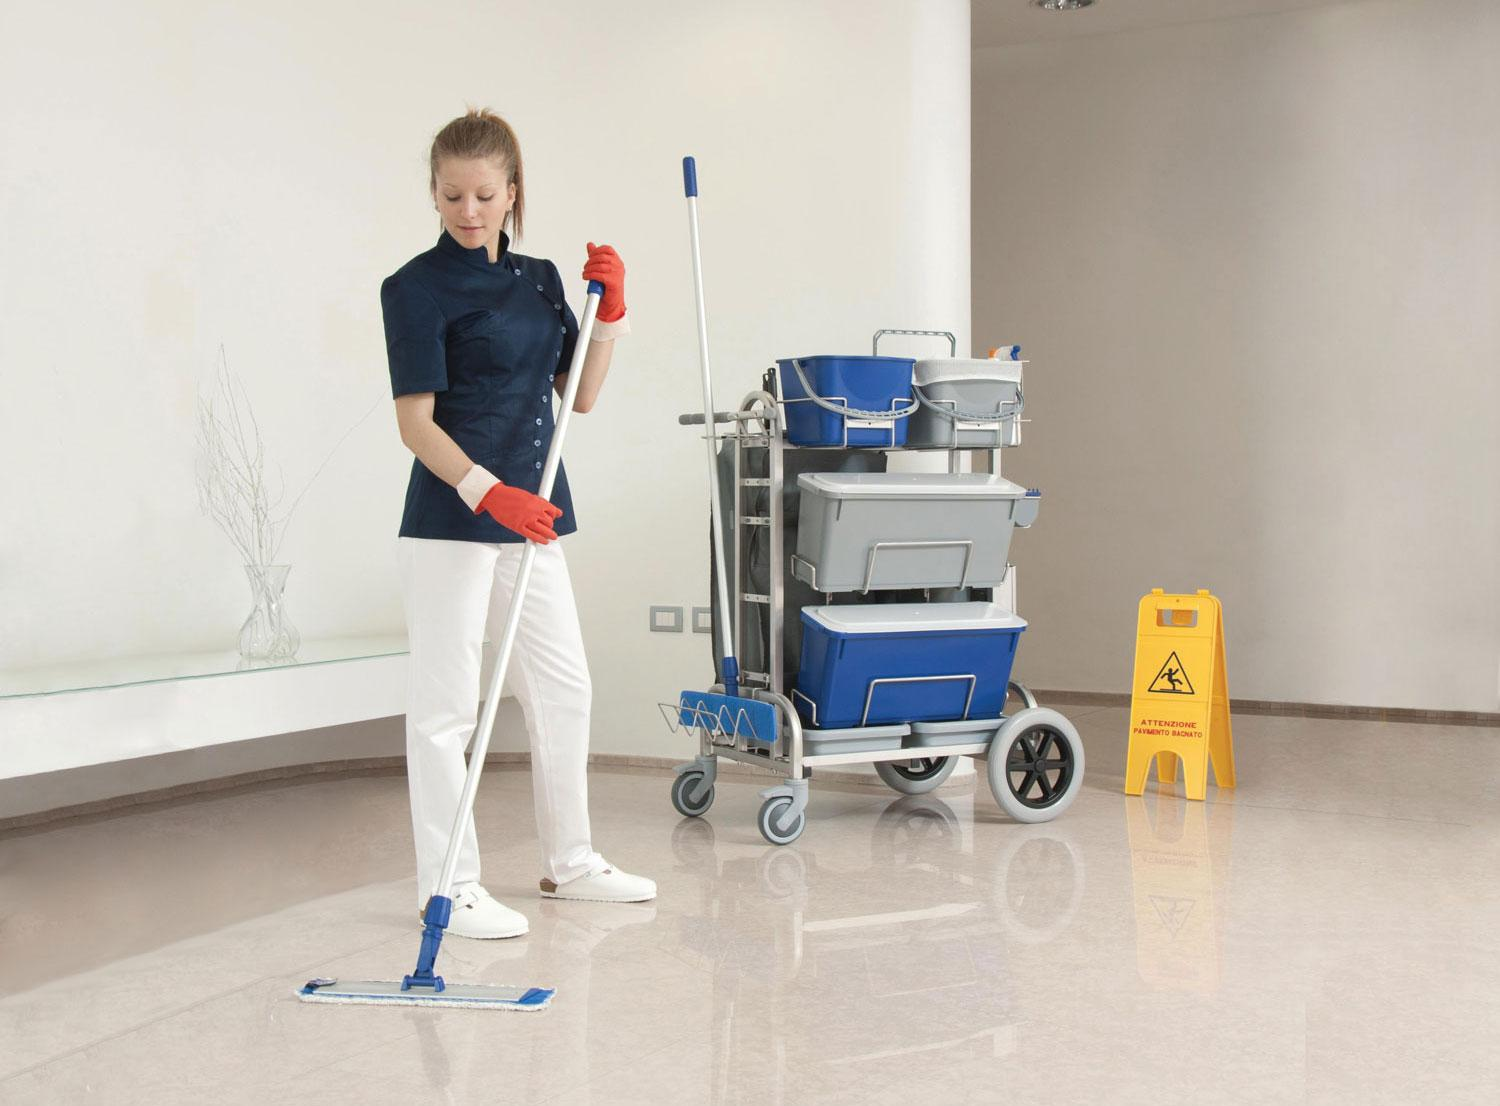 Microrapid washing system with pre-impregnated mops for hospital